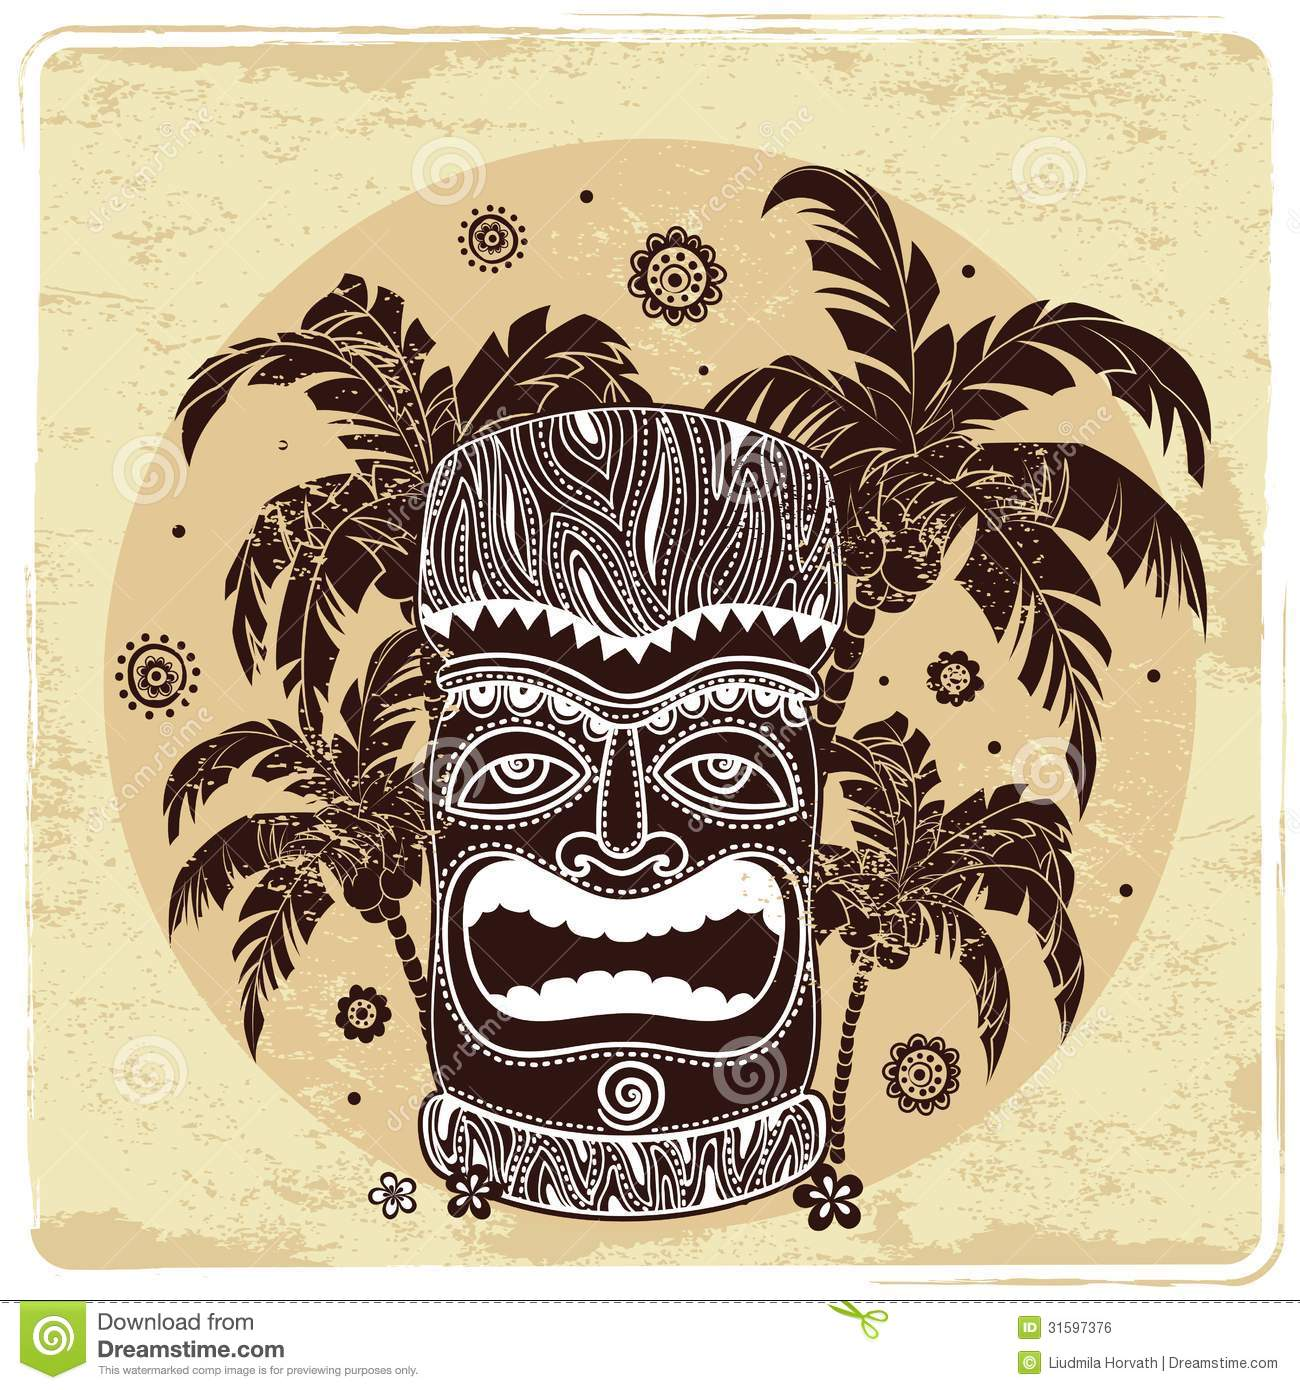 Vintage Aloha Tiki Illustration Royalty Free Stock Image